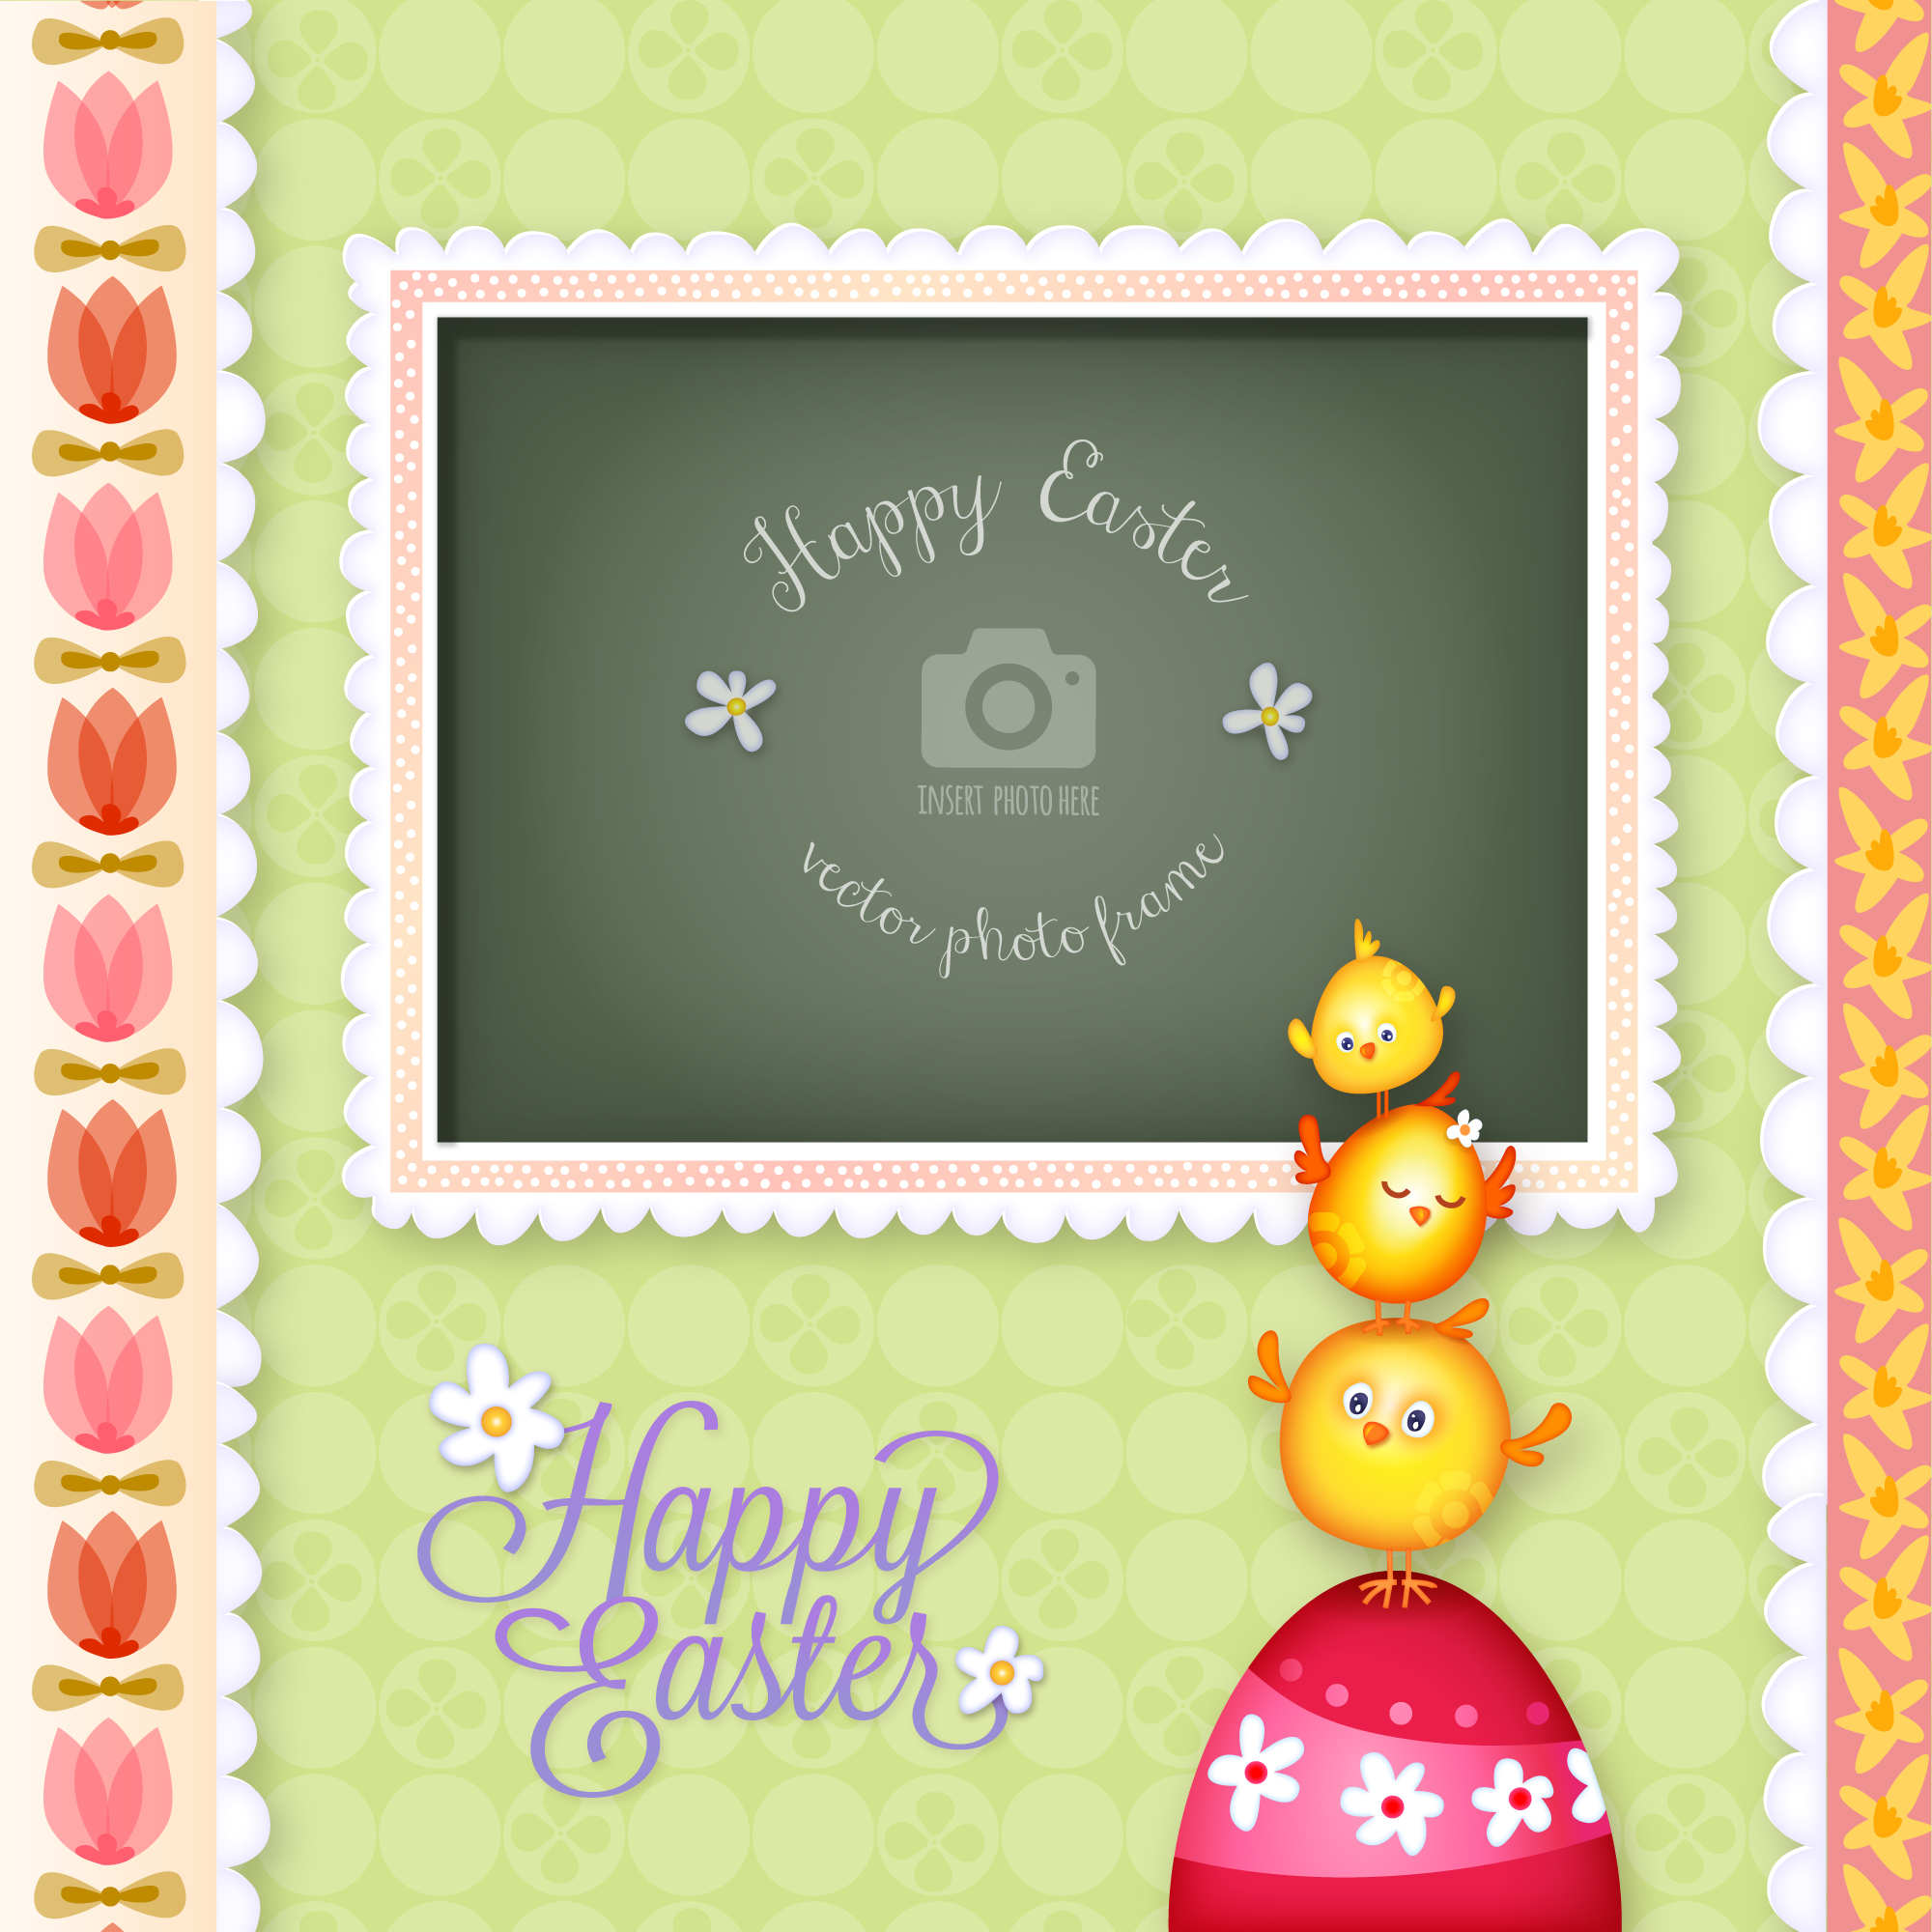 Easter photo frame design